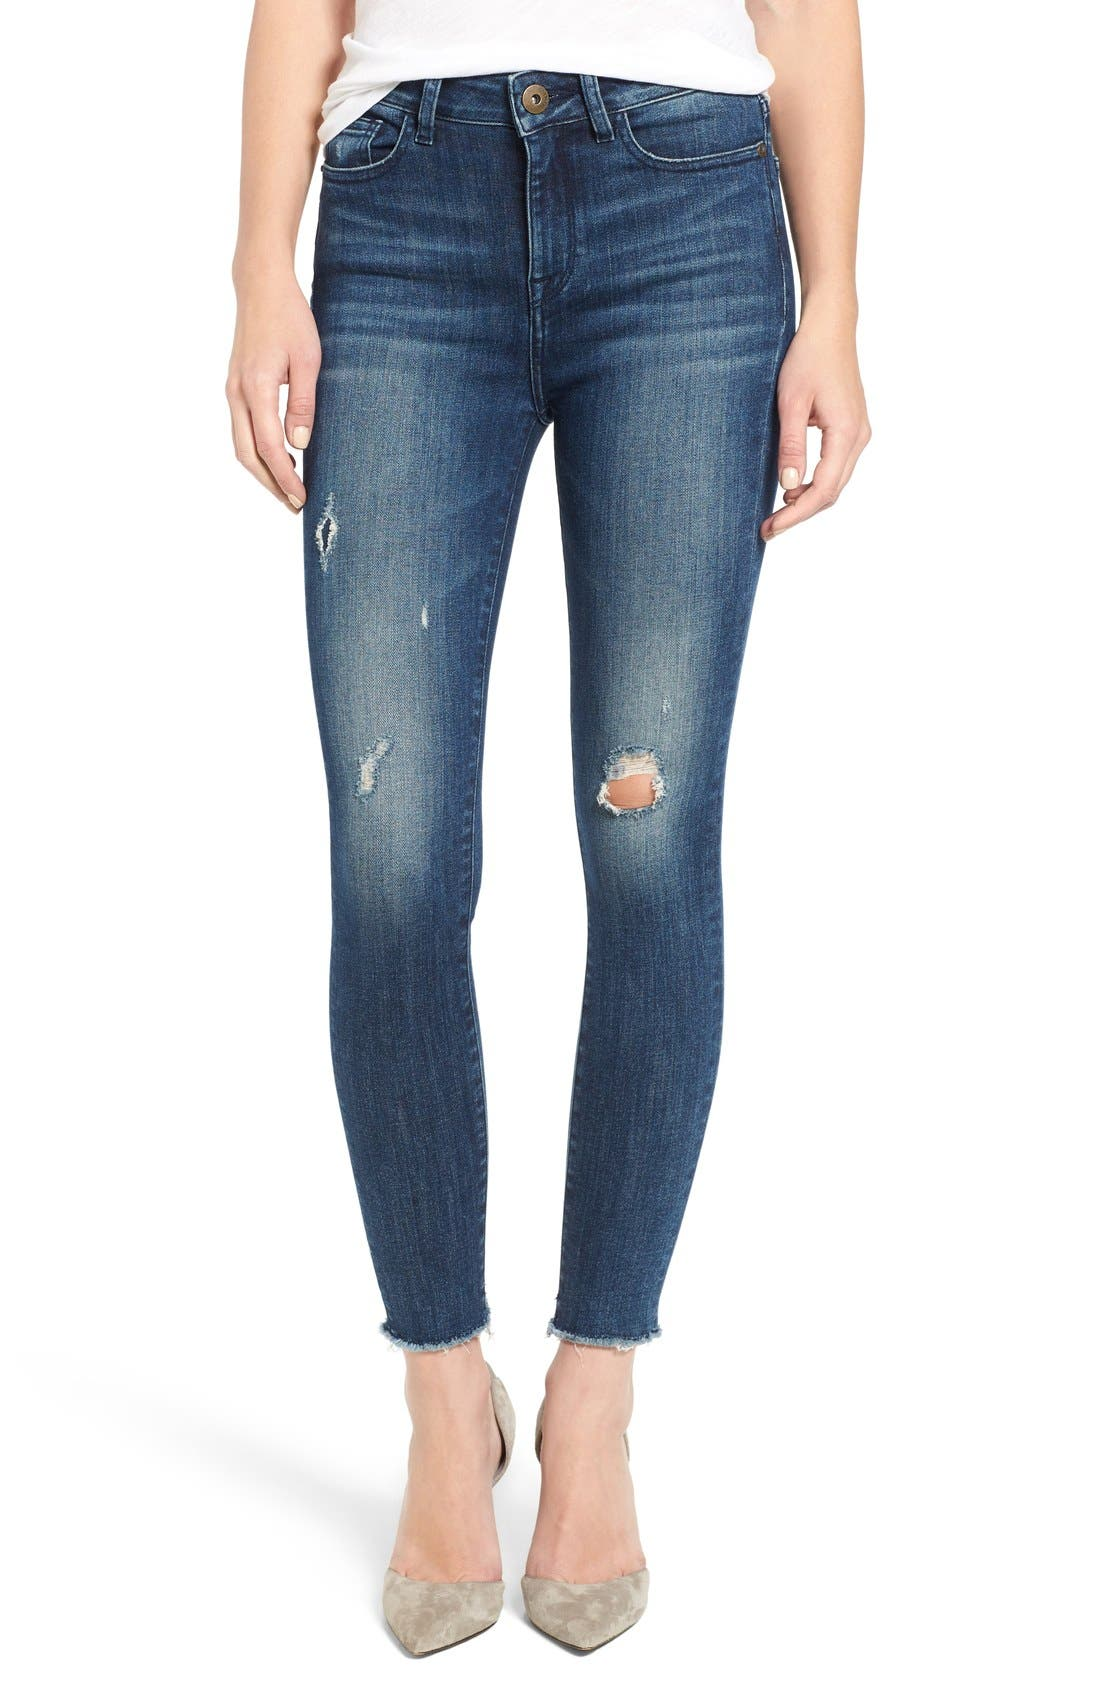 DL1961 Womens Petite Skinny Ankle Jeans Jeans